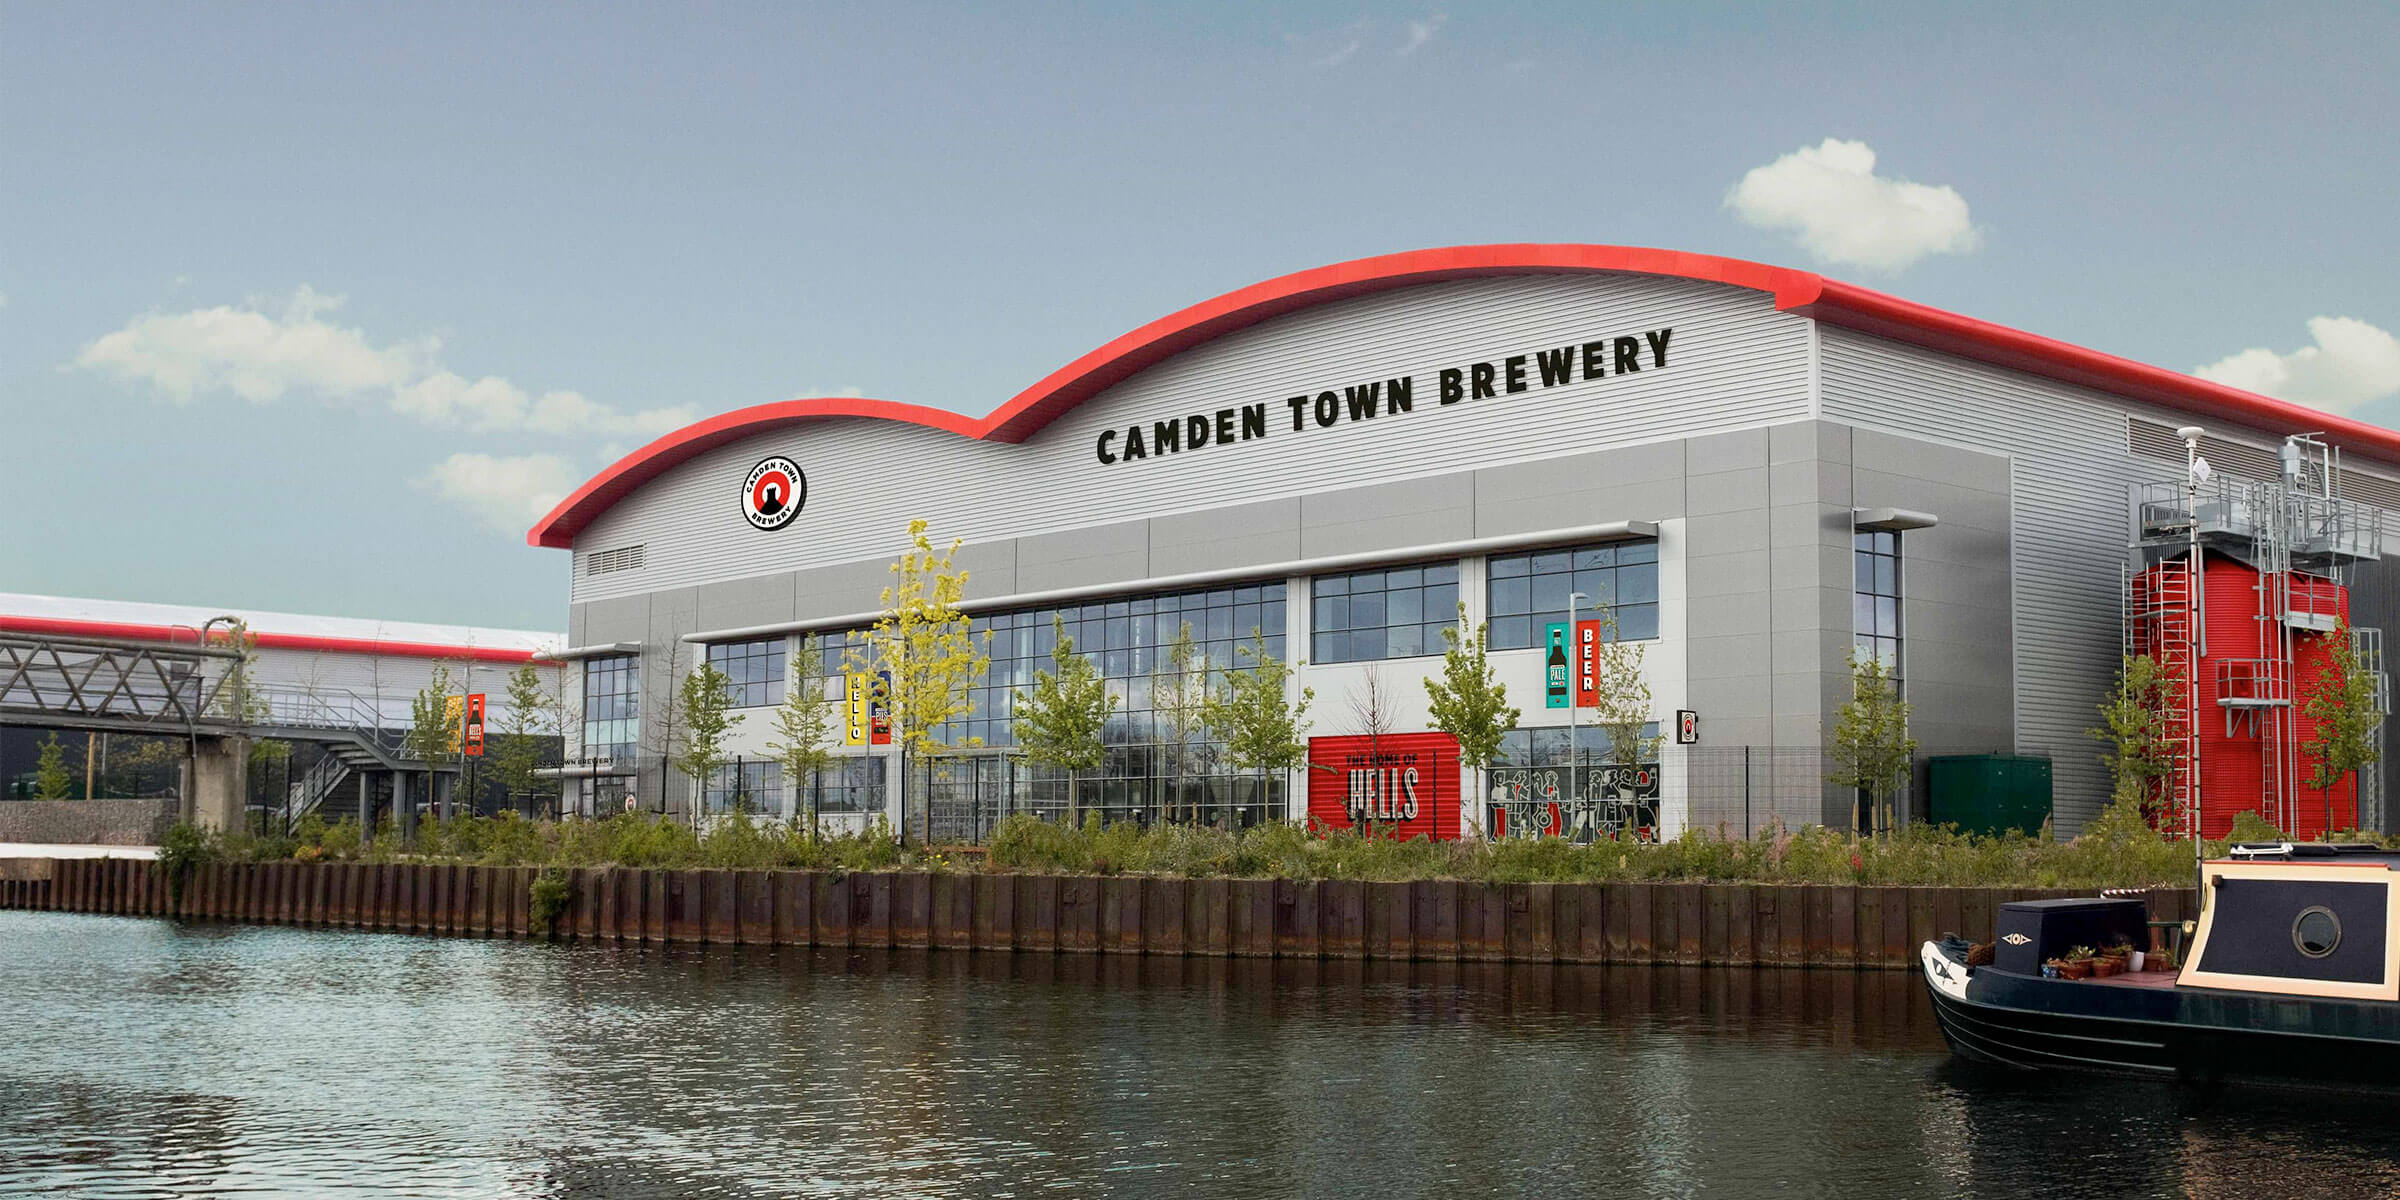 Outside the Camden Town Brewery production facility in Enfield, United Kingdom